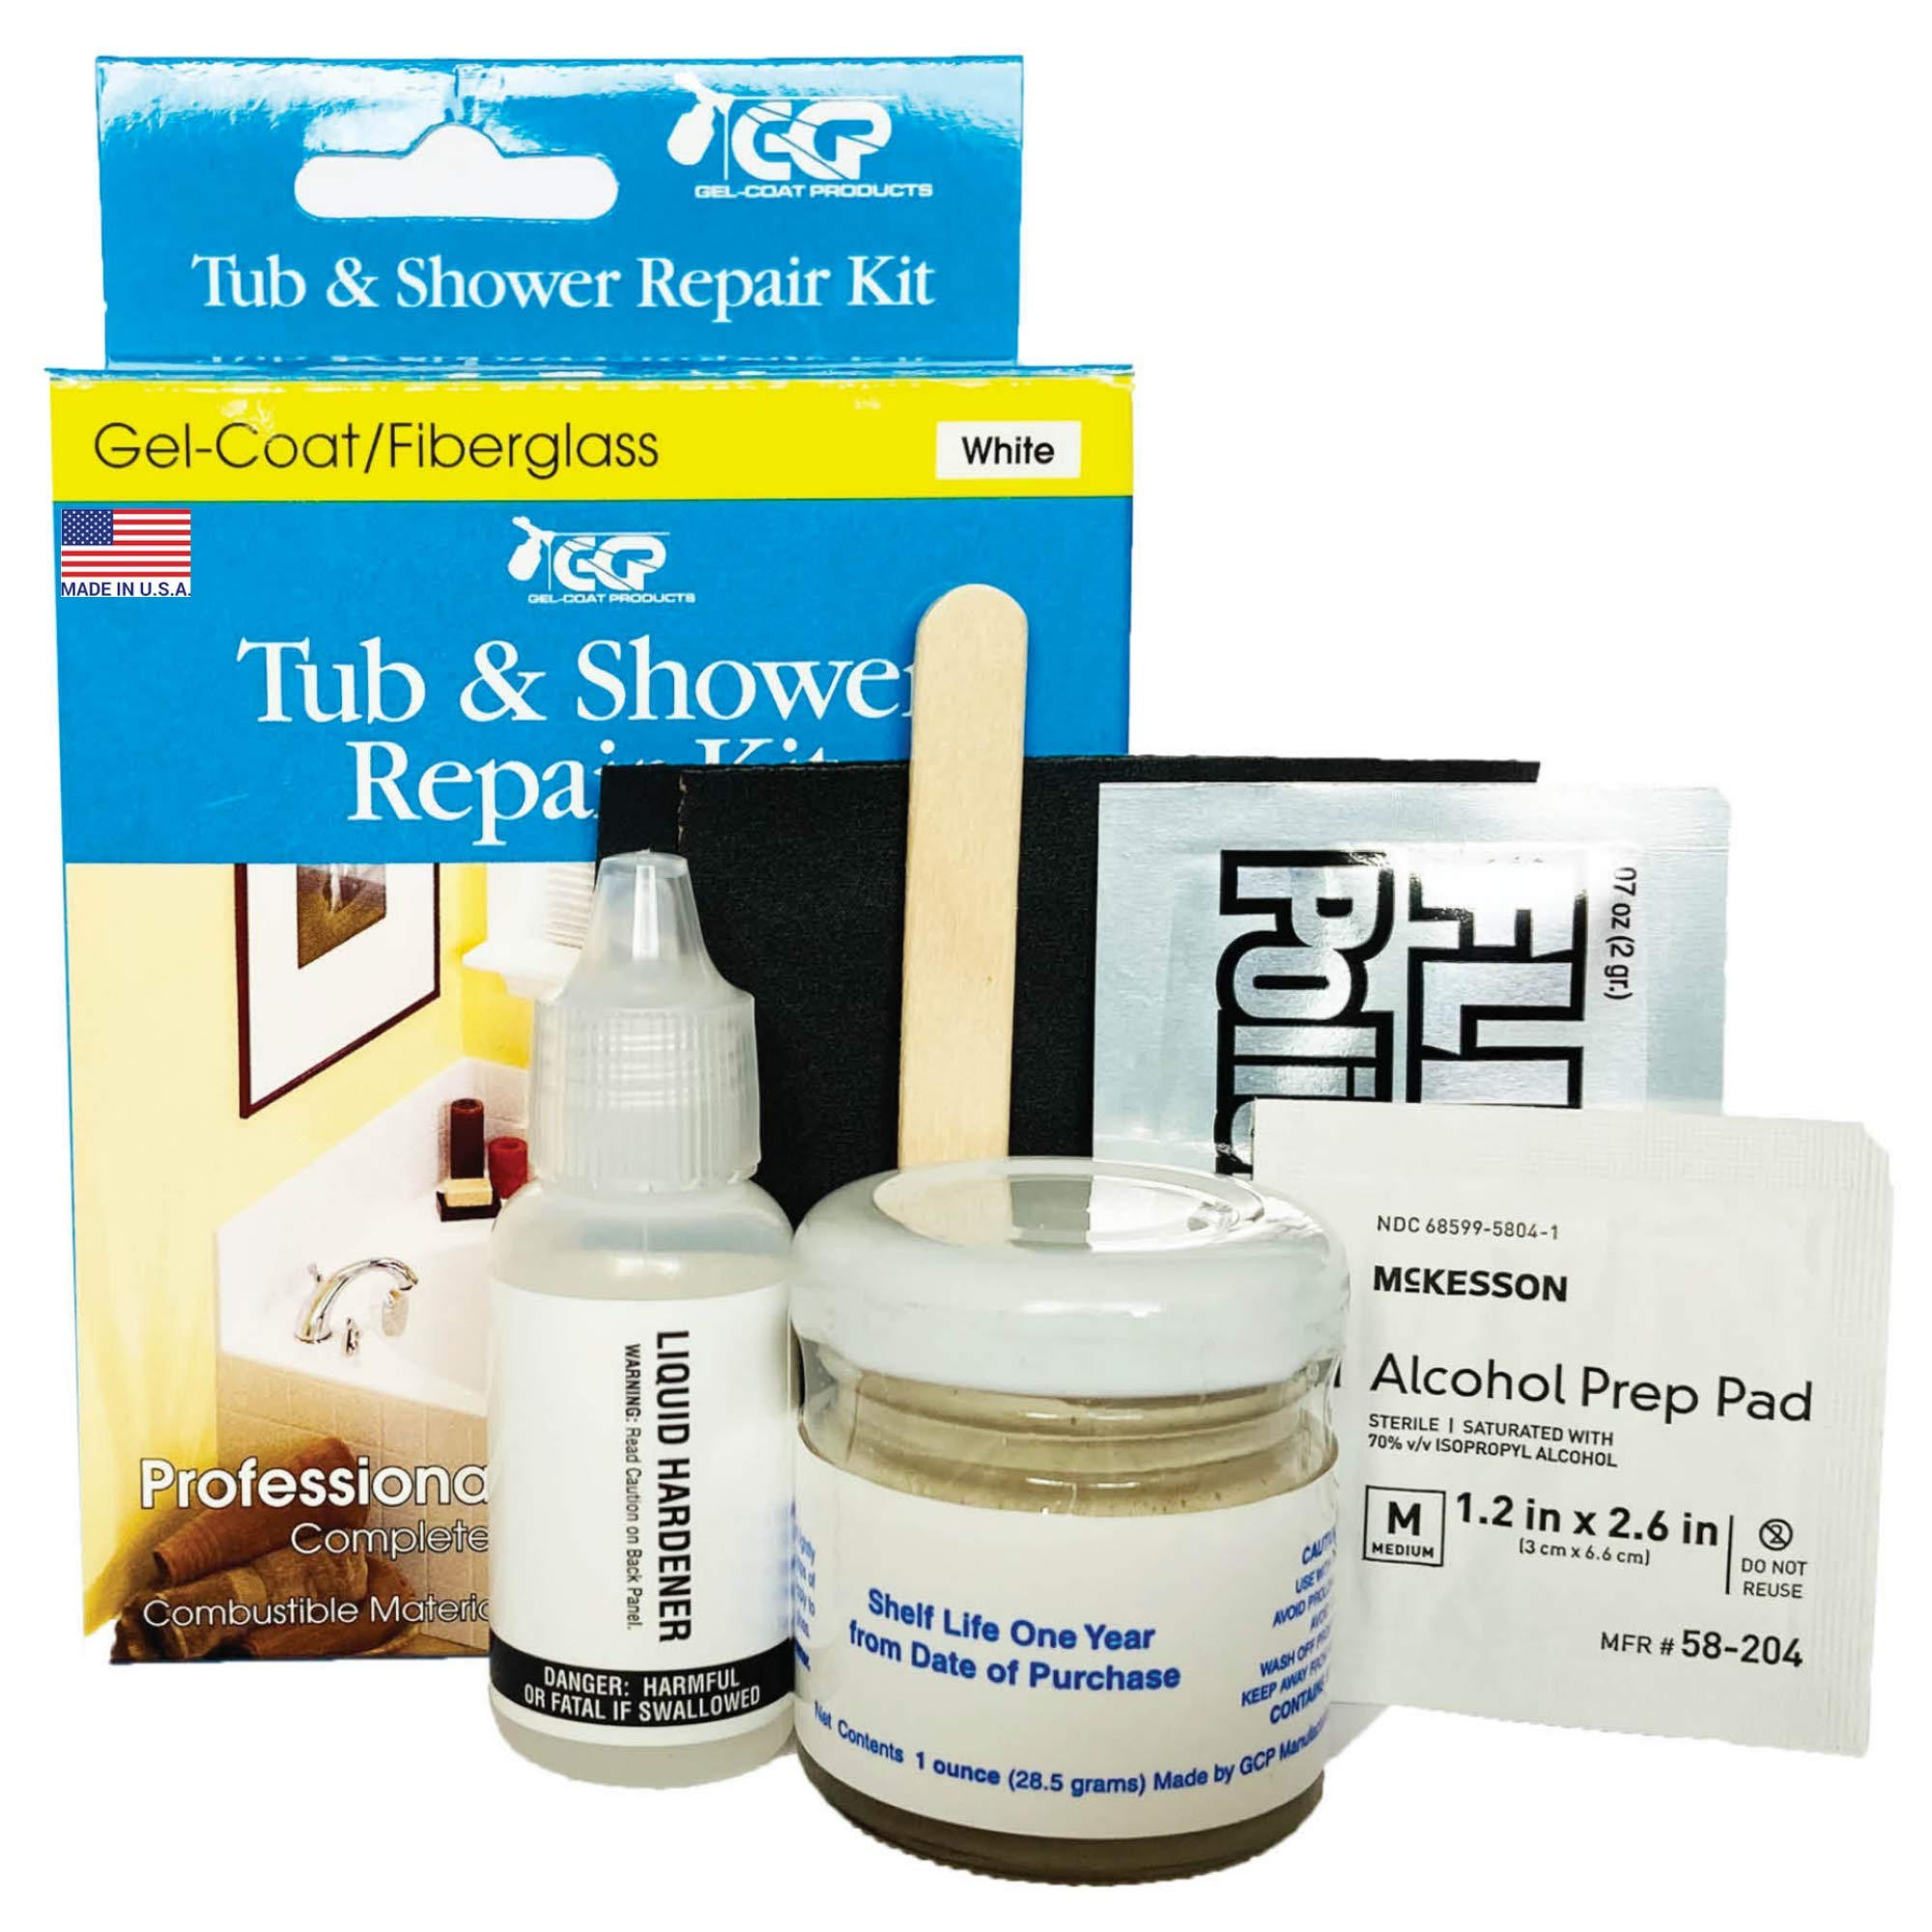 Gelcoat Products 001 Tub and Shower Repair Kit Sealers, White